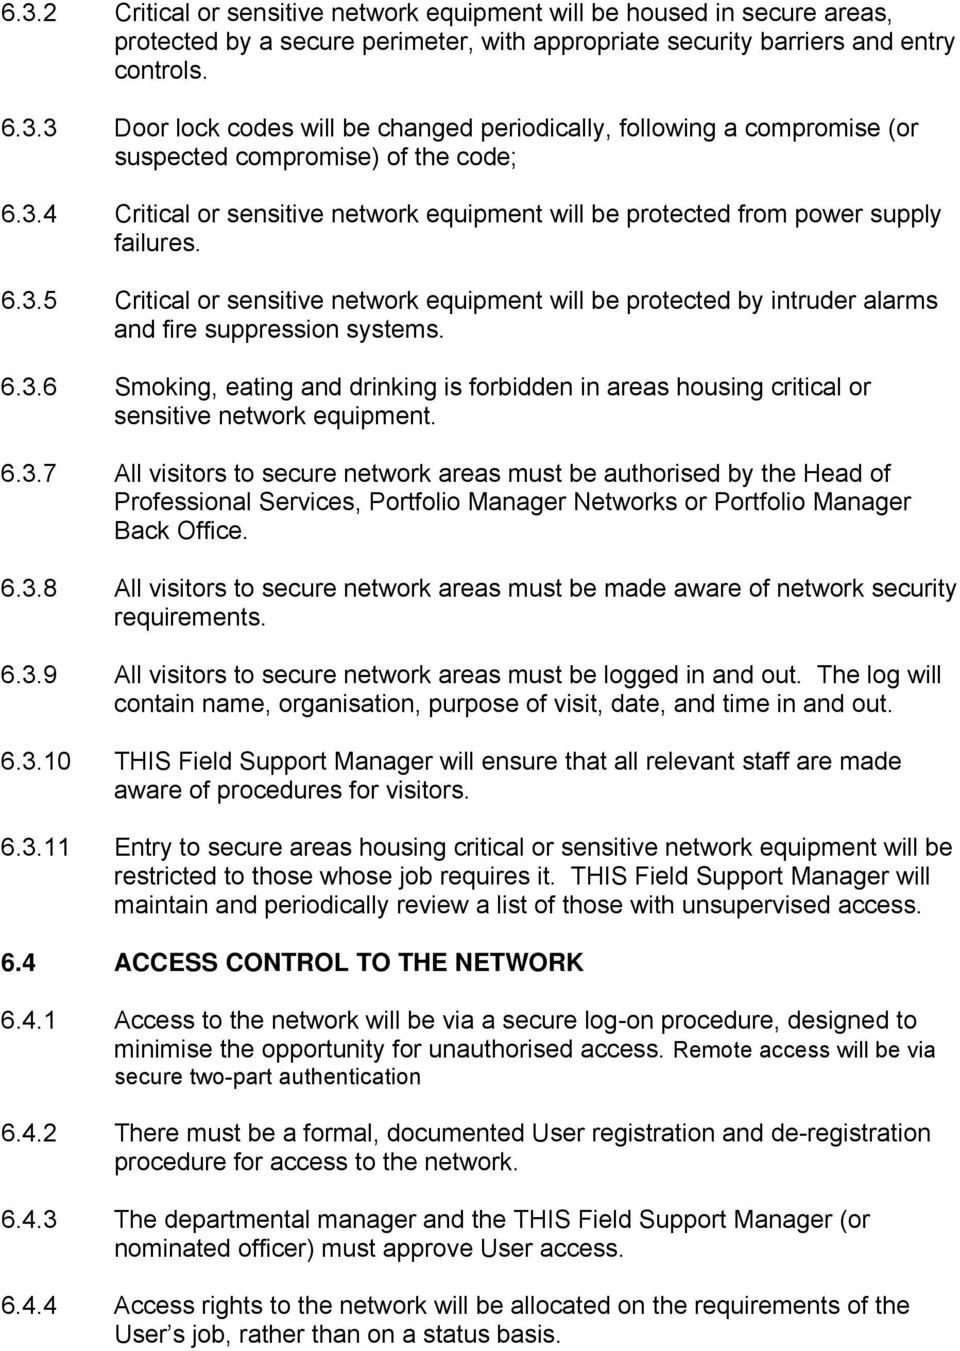 6.3.6 Smoking, eating and drinking is forbidden in areas housing critical or sensitive network equipment. 6.3.7 All visitors to secure network areas must be authorised by the Head of Professional Services, Portfolio Manager Networks or Portfolio Manager Back Office.